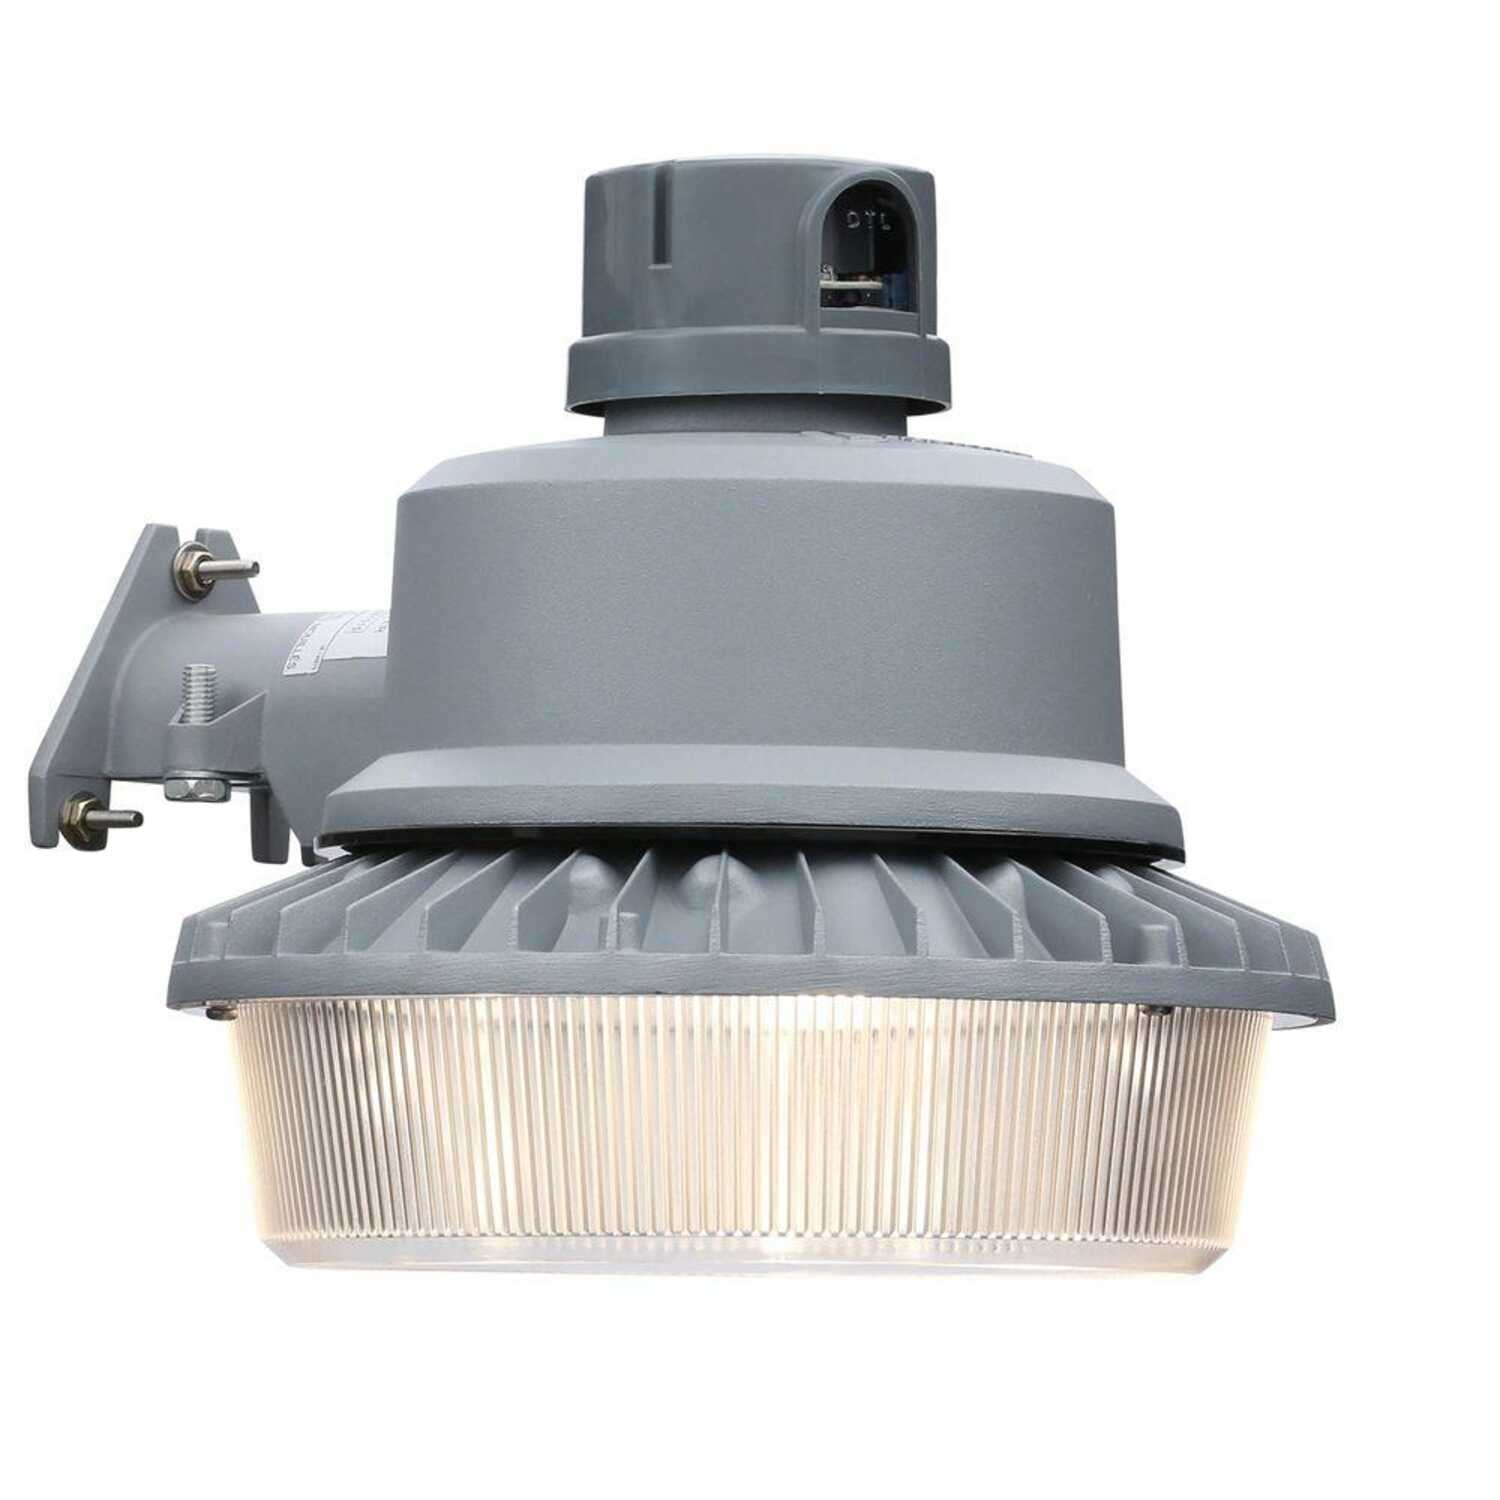 Lithonia Lighting  Dusk to Dawn  Hardwired  LED  Gray  Area Light